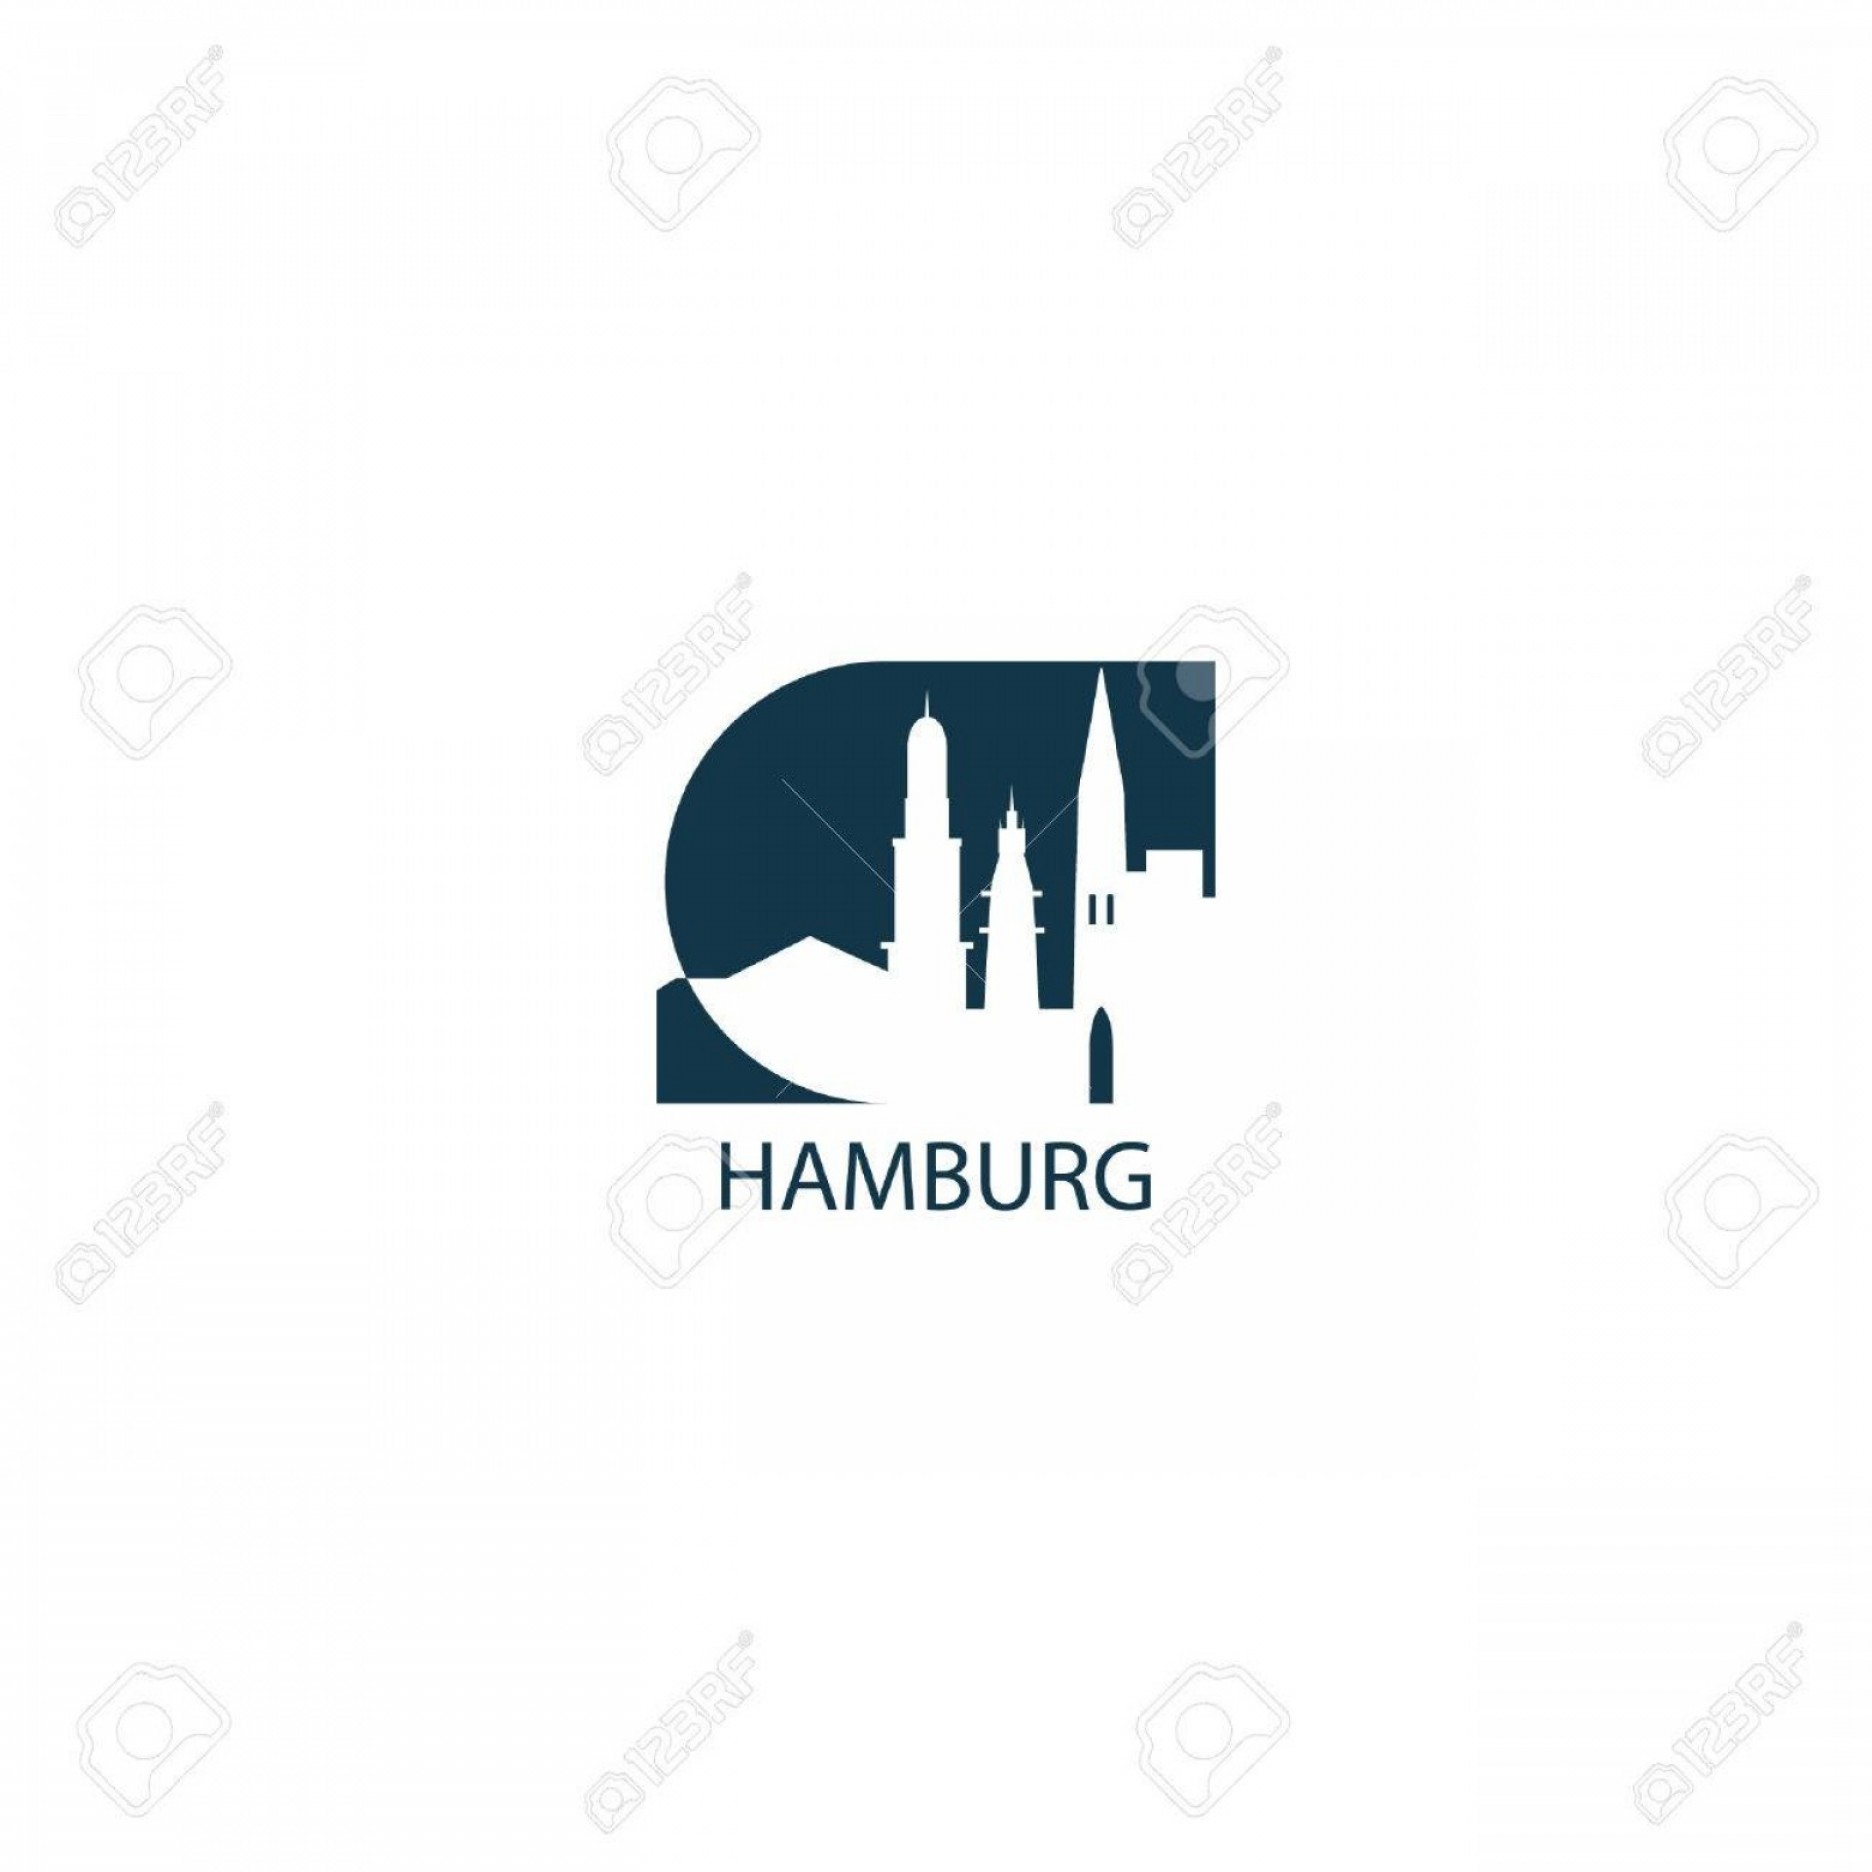 Cool Logo Icon Vector: Photostock Vector Germany Hamburg City Cool Landscape Skyline Panorama Silhouette Vector Logo Icon